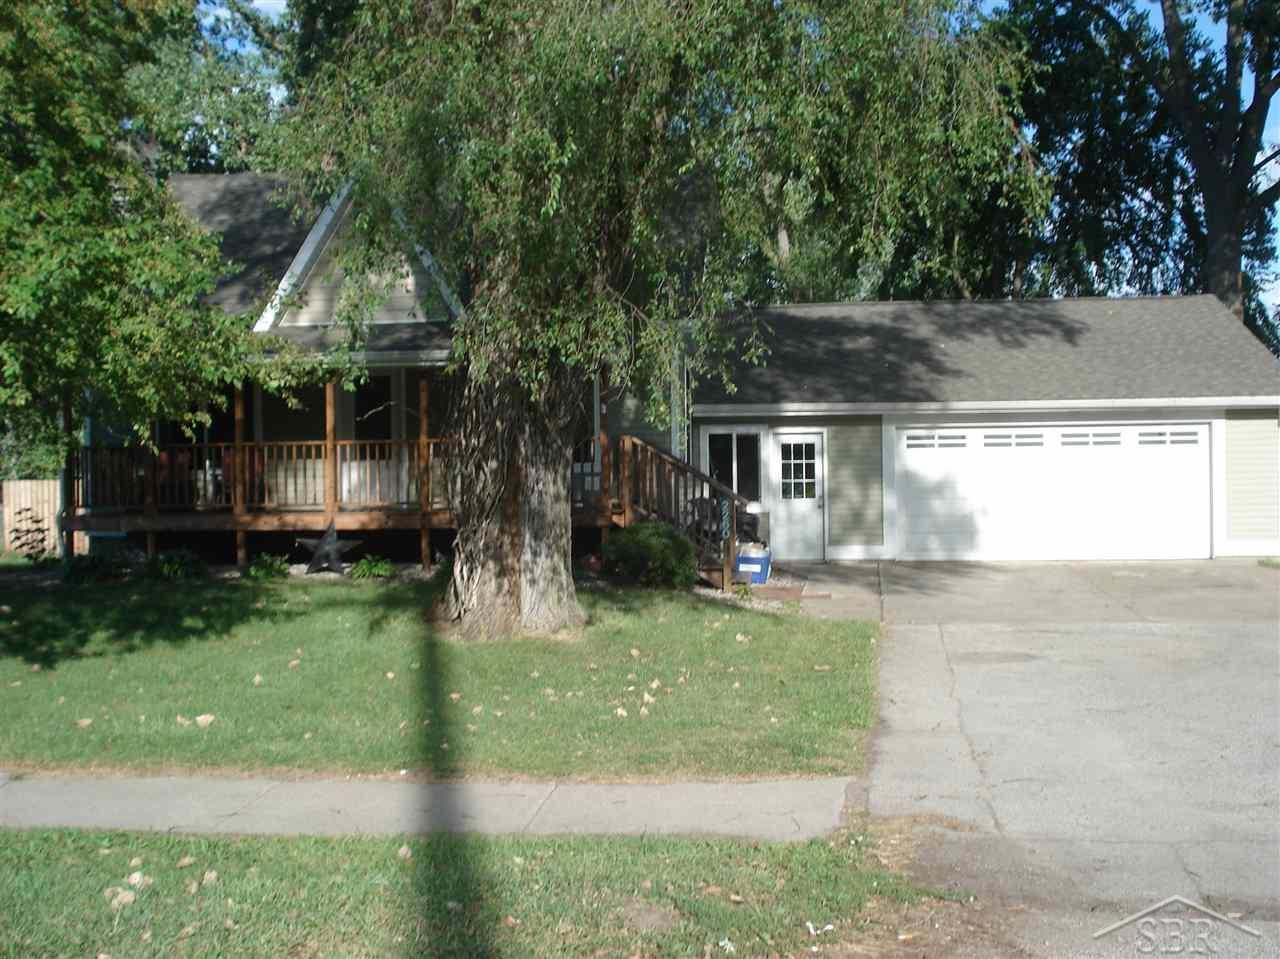 2260 N Center, Saginaw, MI 48603 - MLS#: 50022860